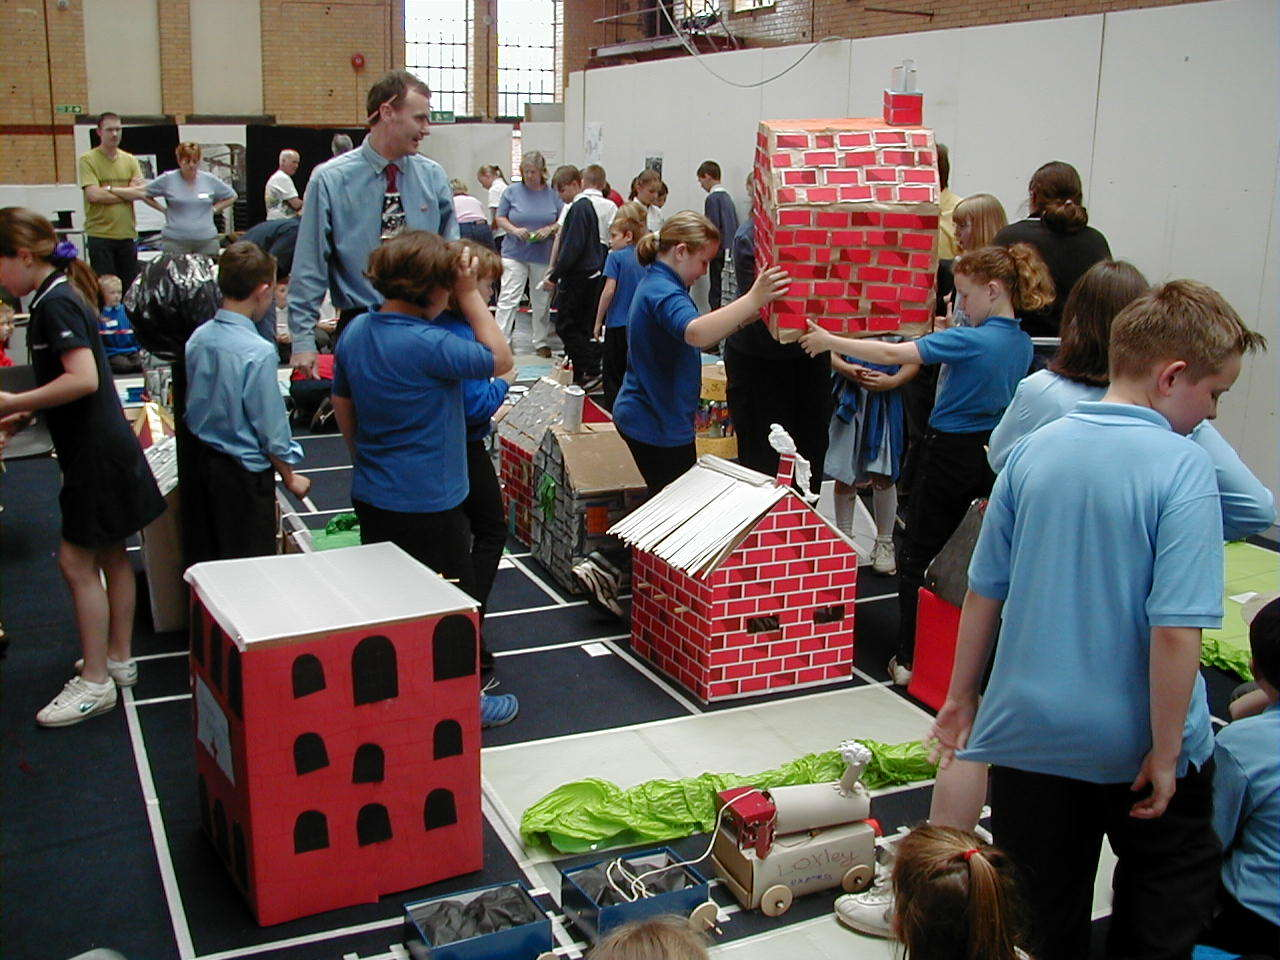 Over 750 pupils take part in Build It every year